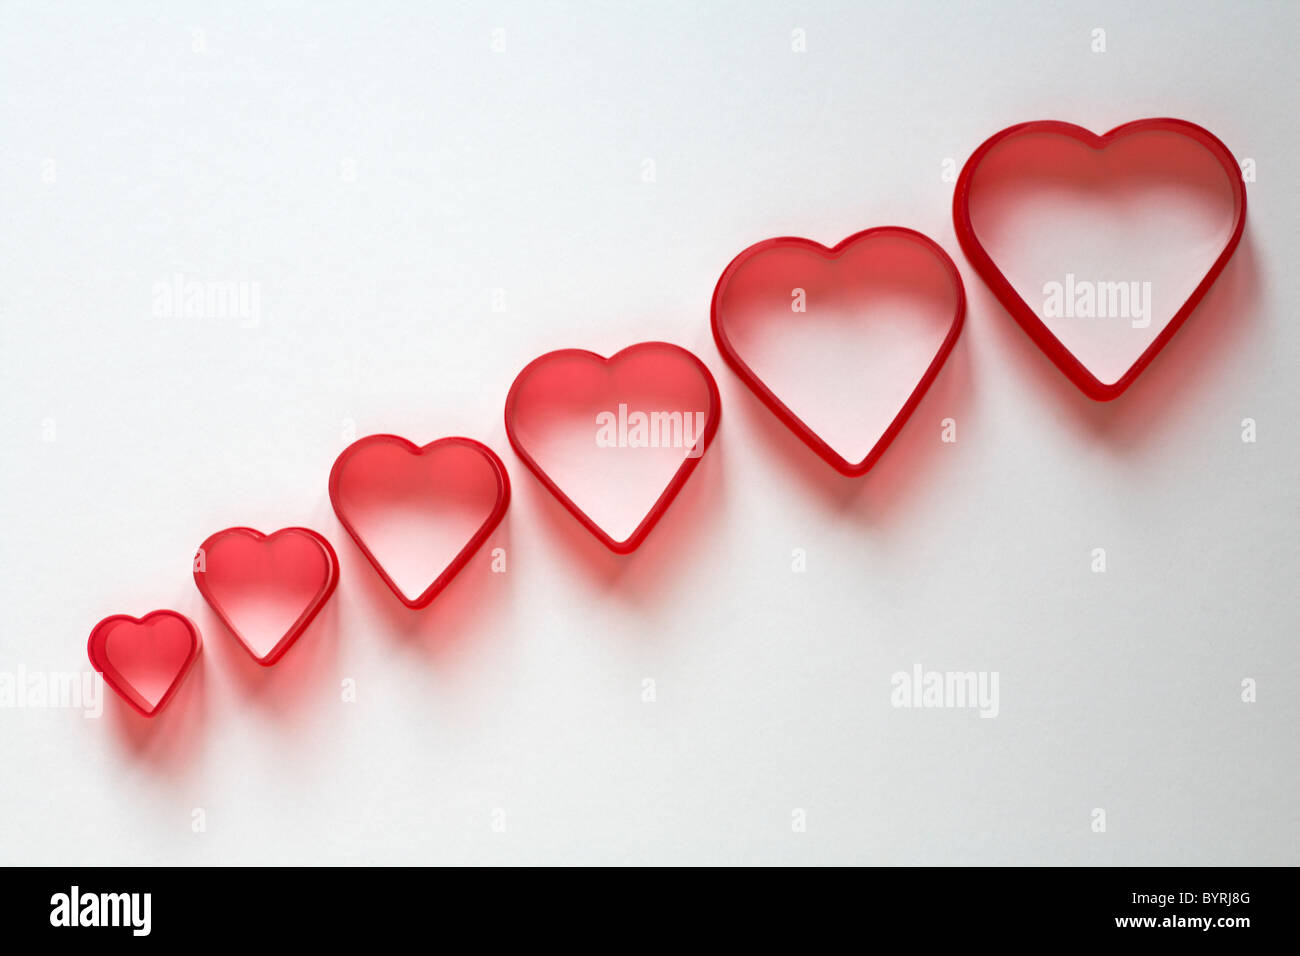 Row of red heart shaped cutters increasing in size isolated against white background - concept falling in love - Stock Image